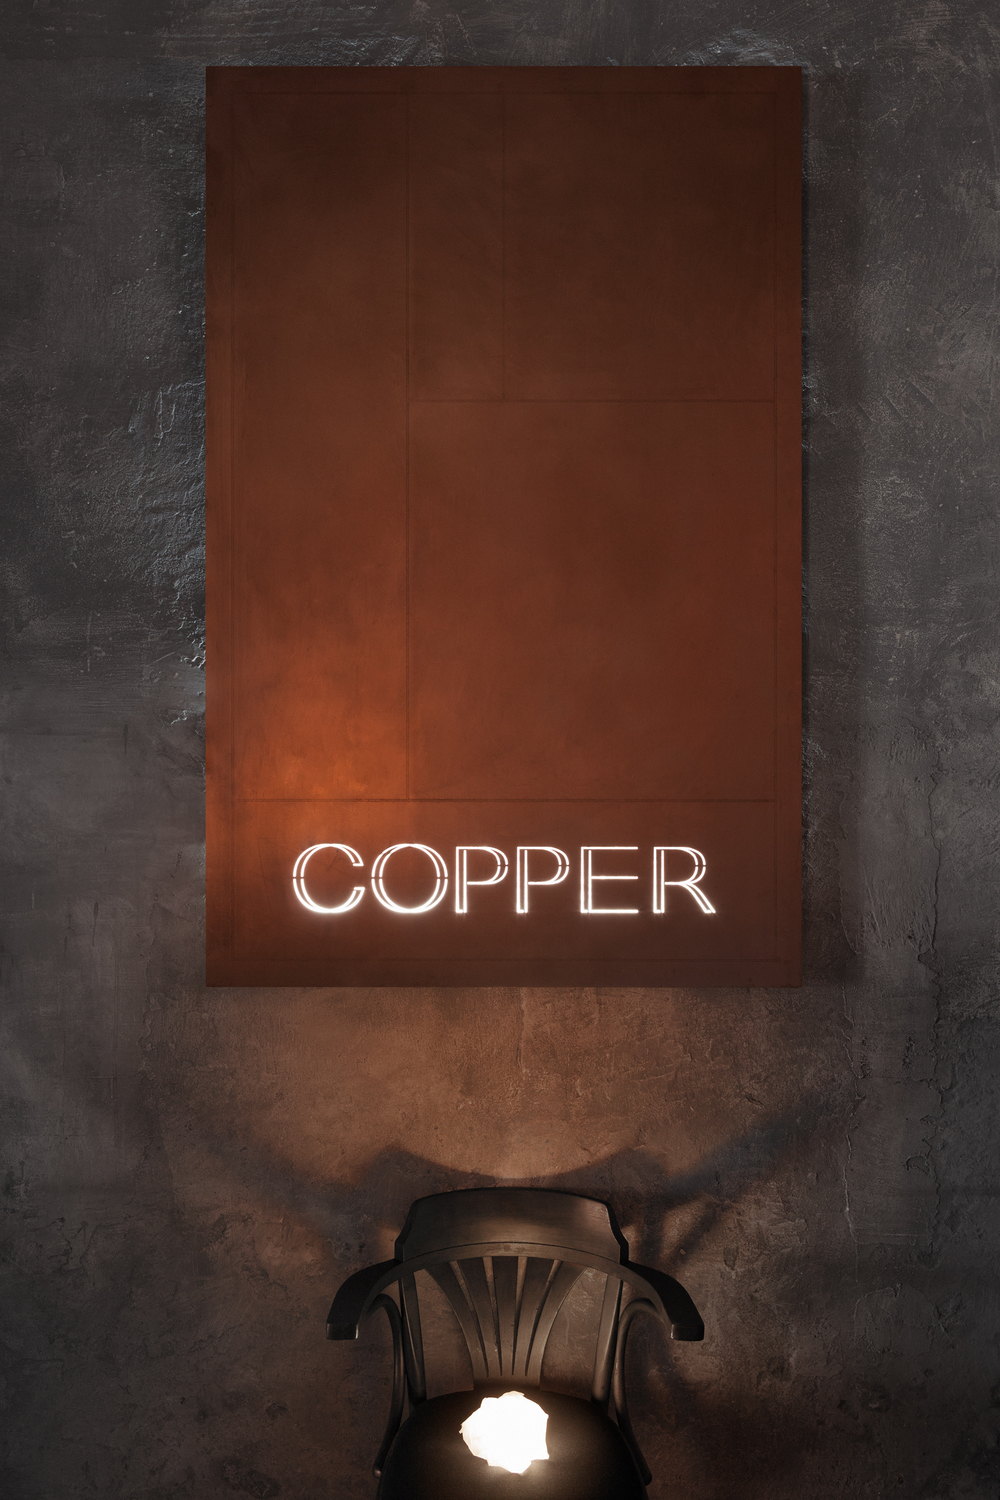 Copper_Bar_Zavoral_architekt_BoysPlayNice_06.jpg